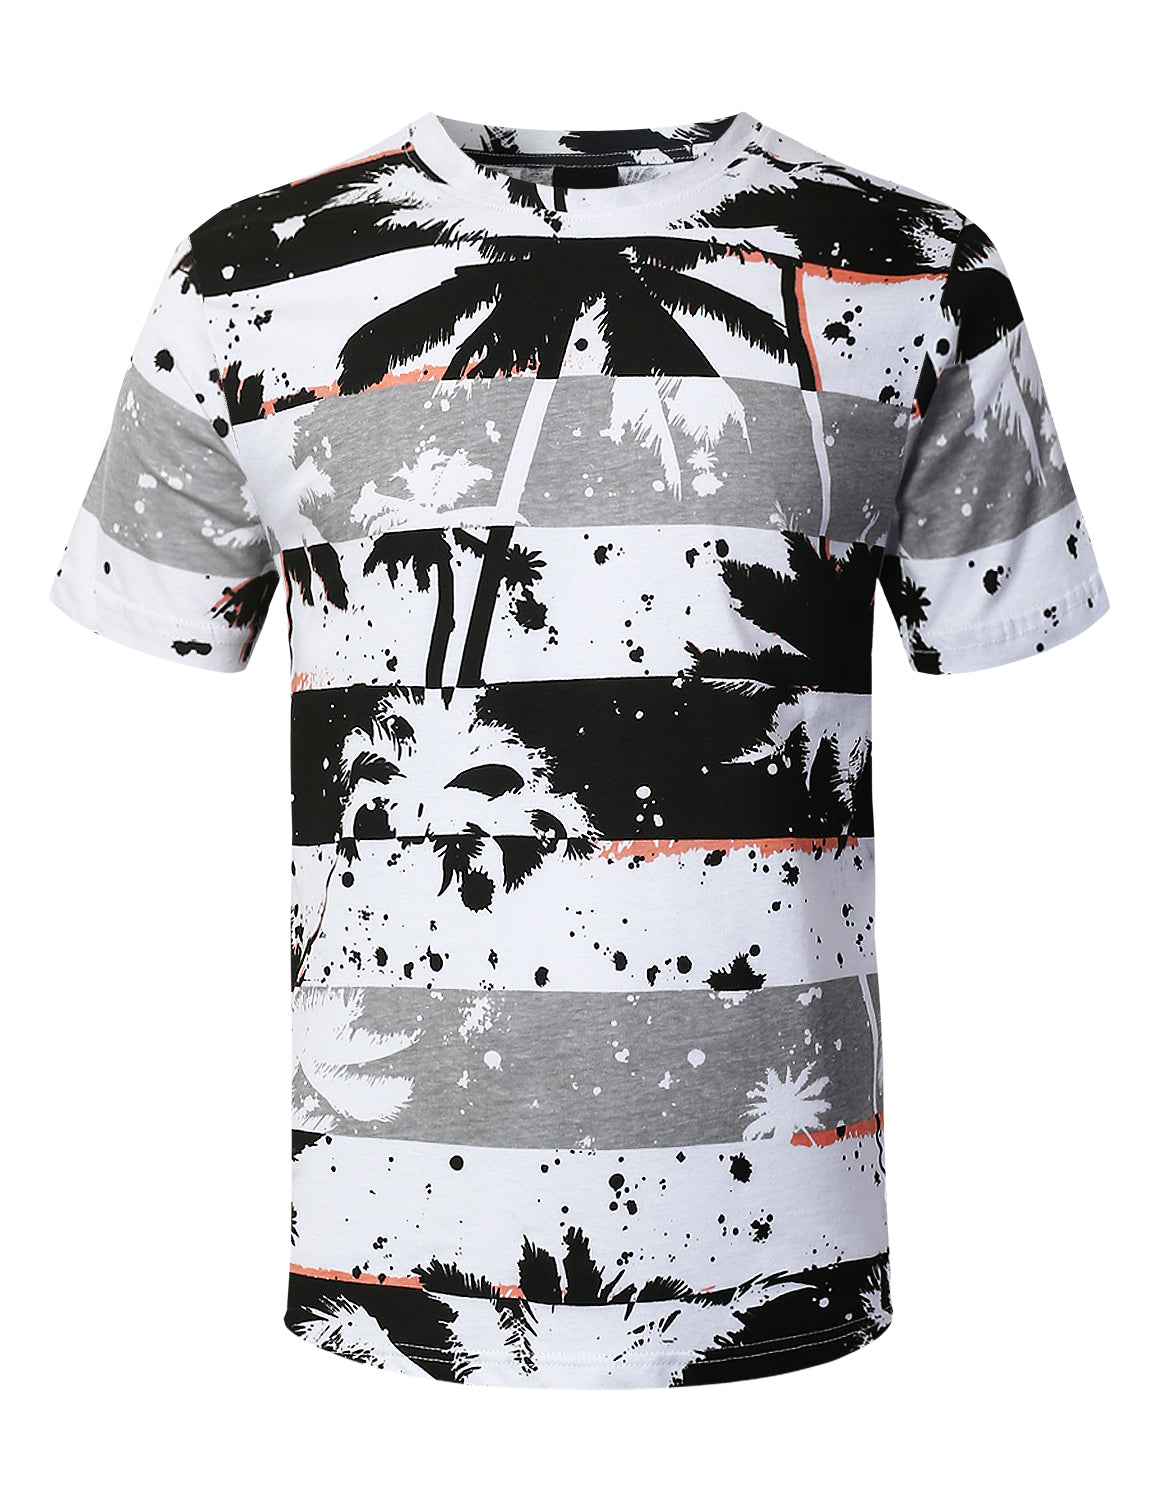 BLACK Palm Tree Striped Print T-shirt - URBANCREWS